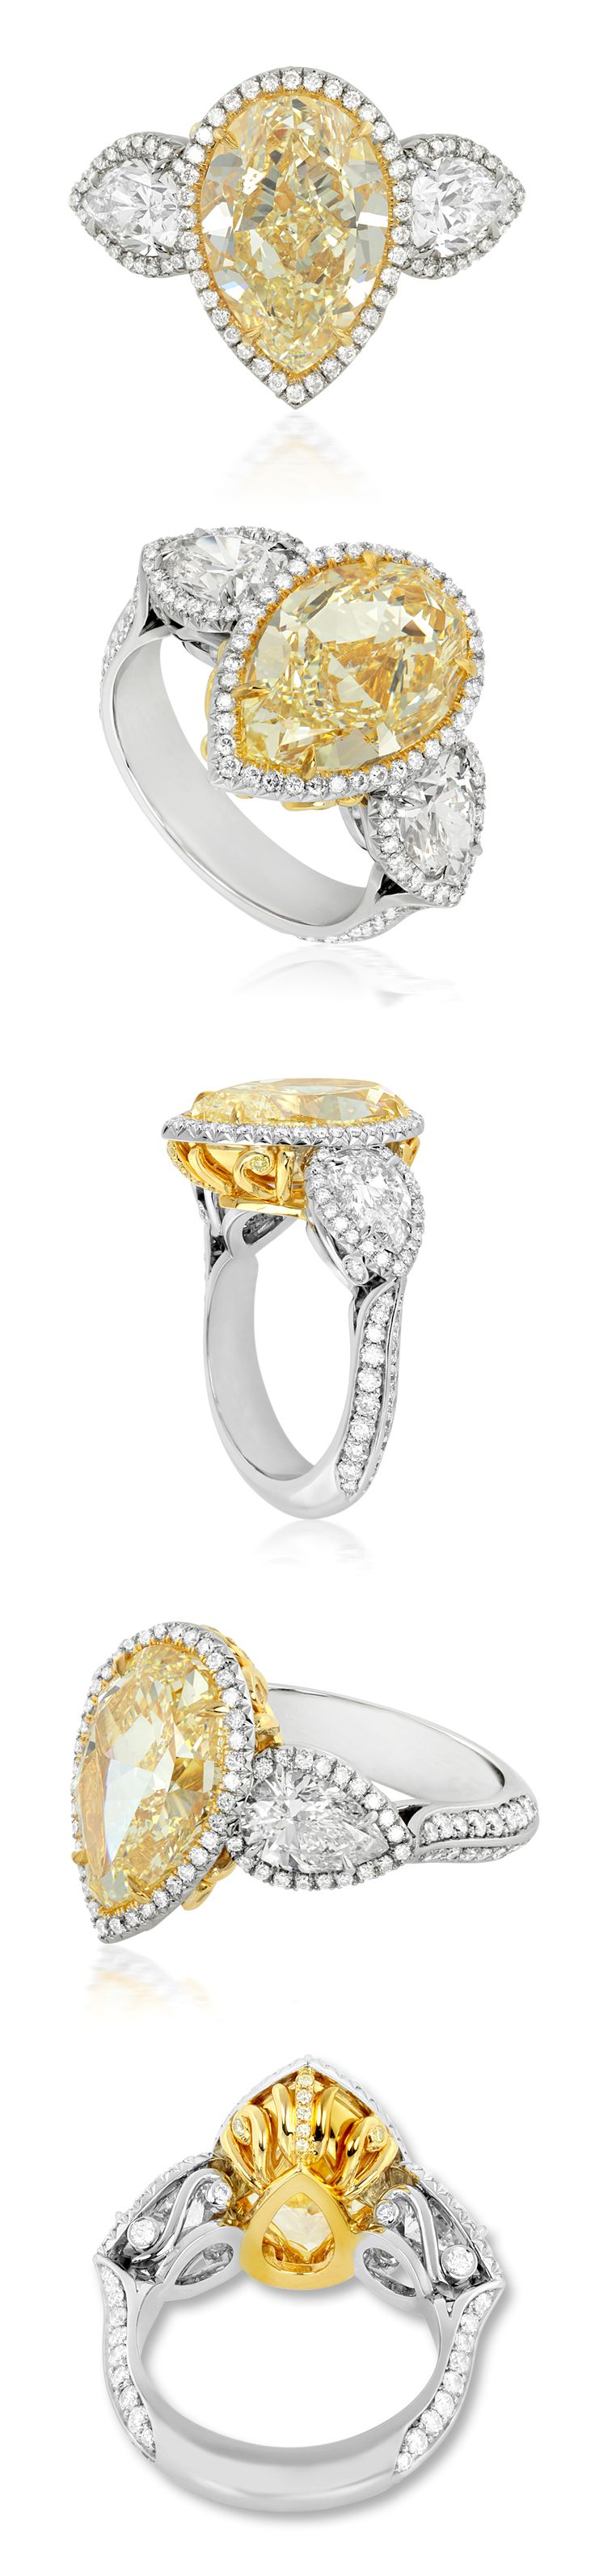 cushion double listing diamond split def ring engagement fullxfull il with halo shank color zoom